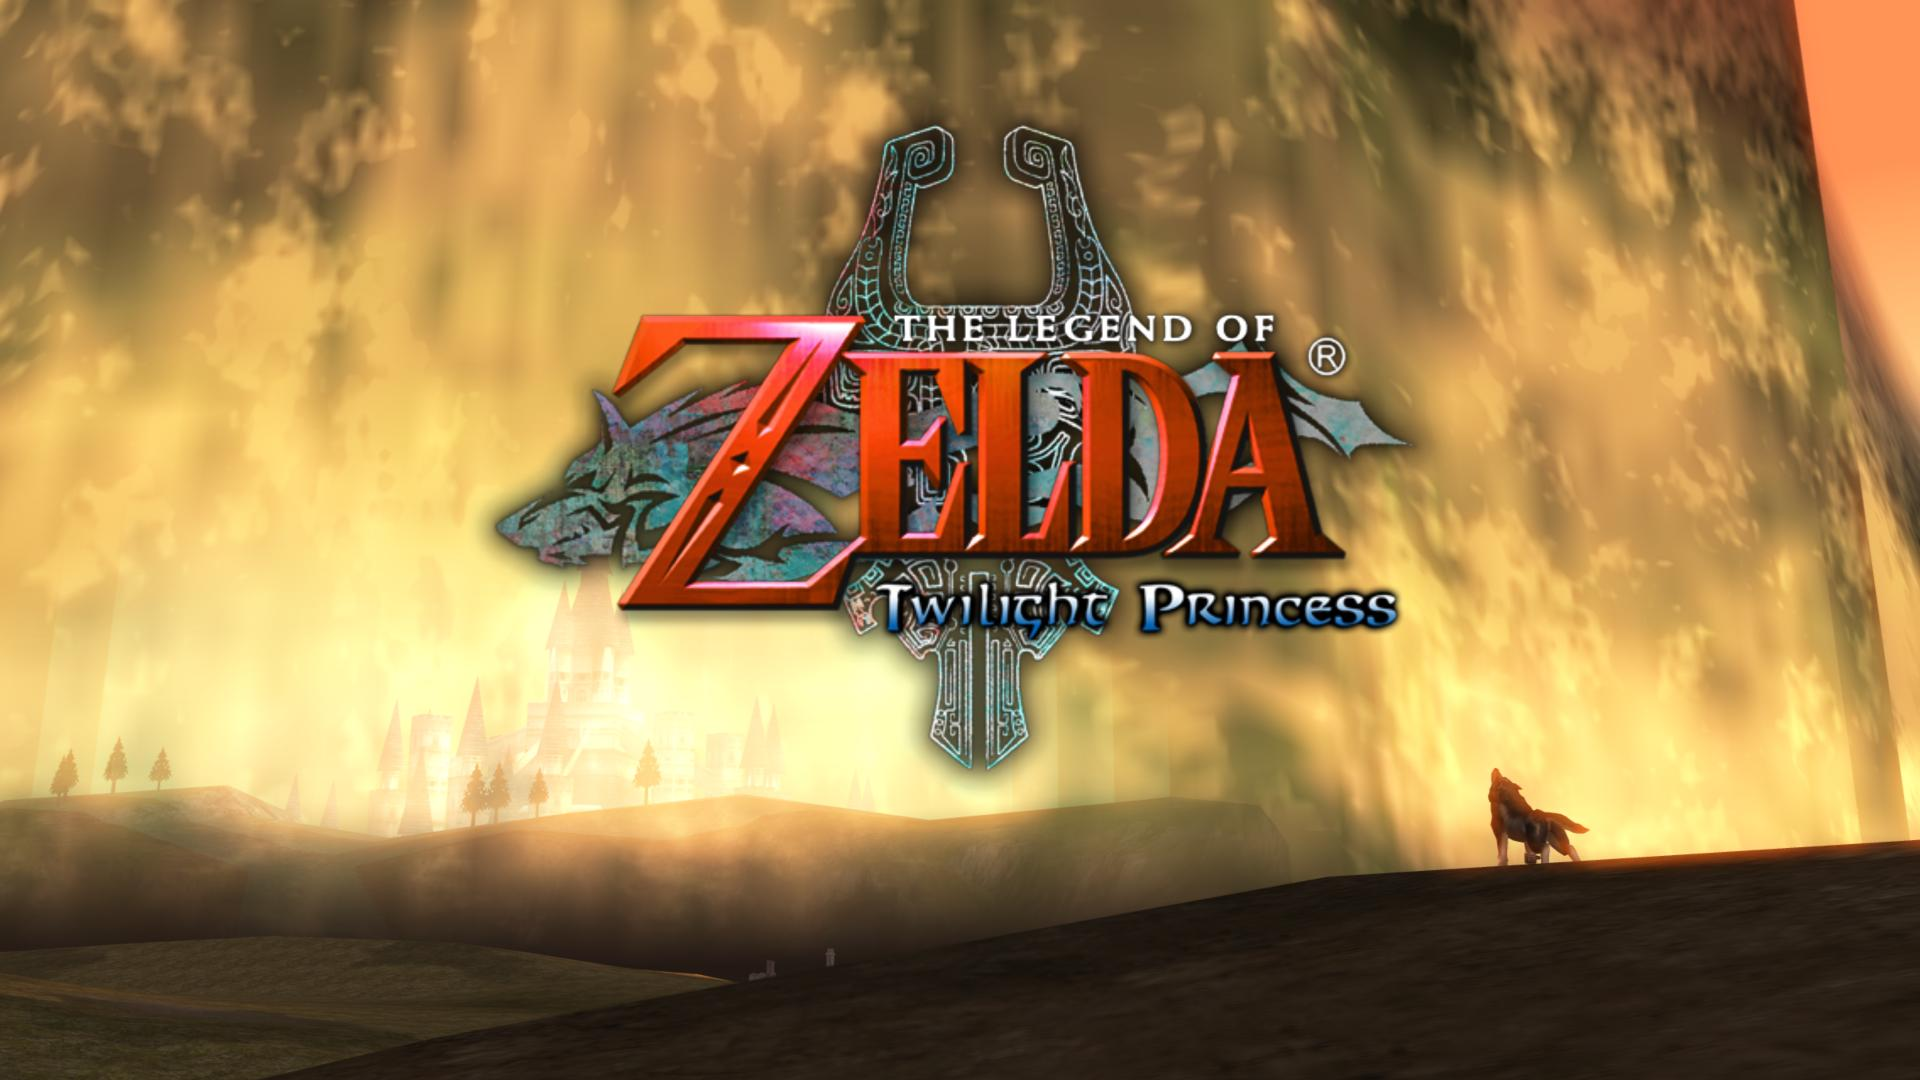 Legend Of Zelda Twilight Princess Wallpaper 7370 Wallpapers Wallver 1920x1080